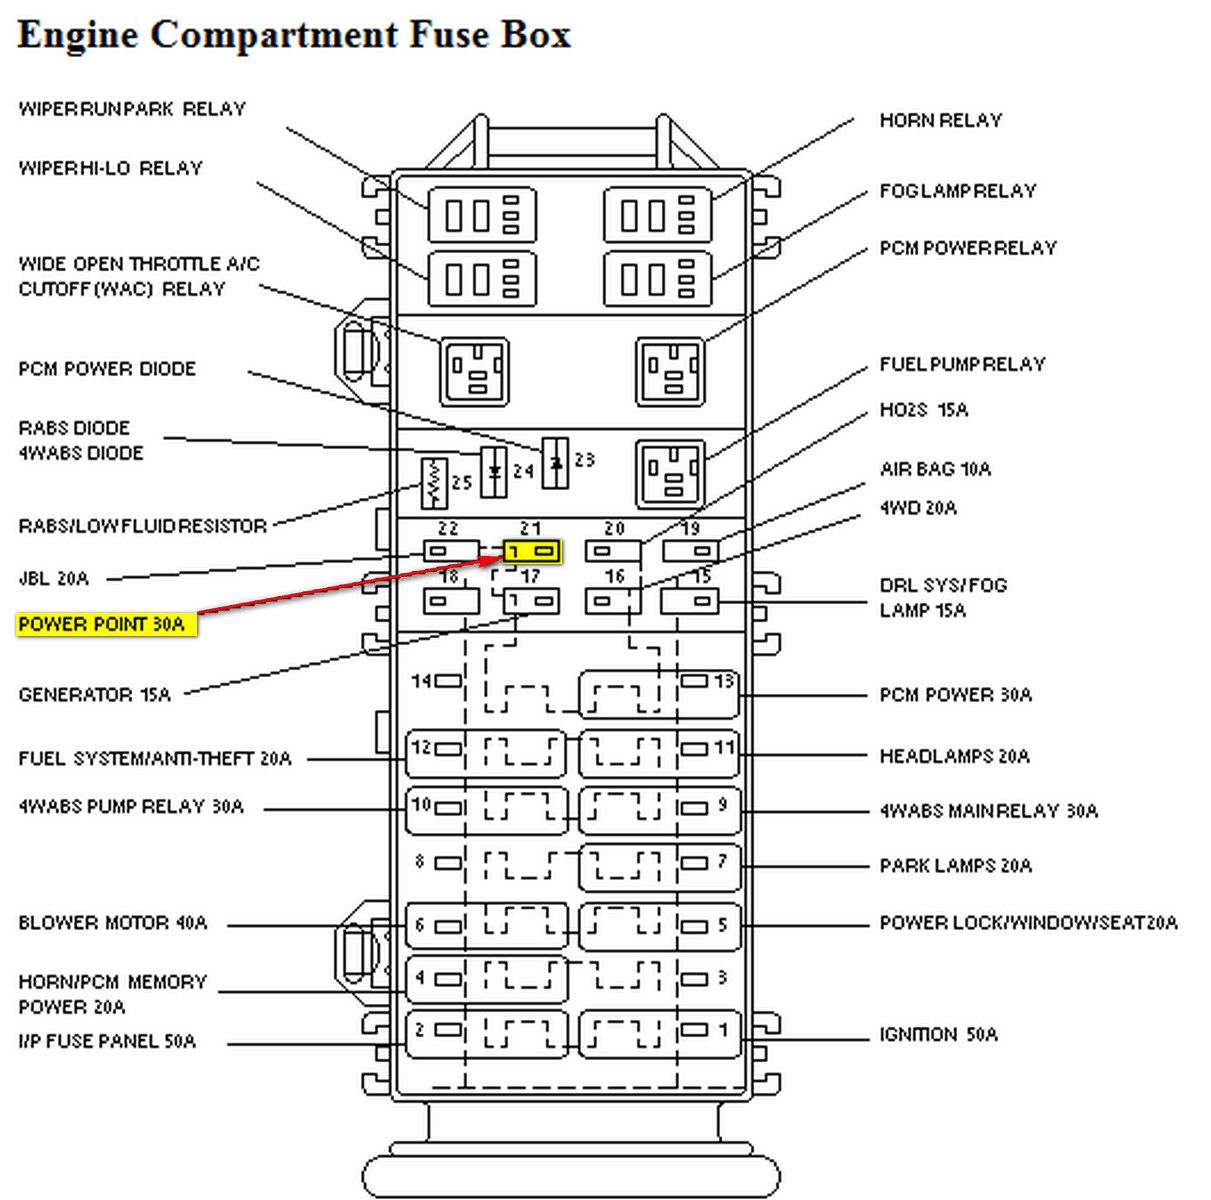 medium resolution of 2006 ford ranger fuse box diagram wiring diagram origin 1998 ford ranger fuse diagram 1997 ford